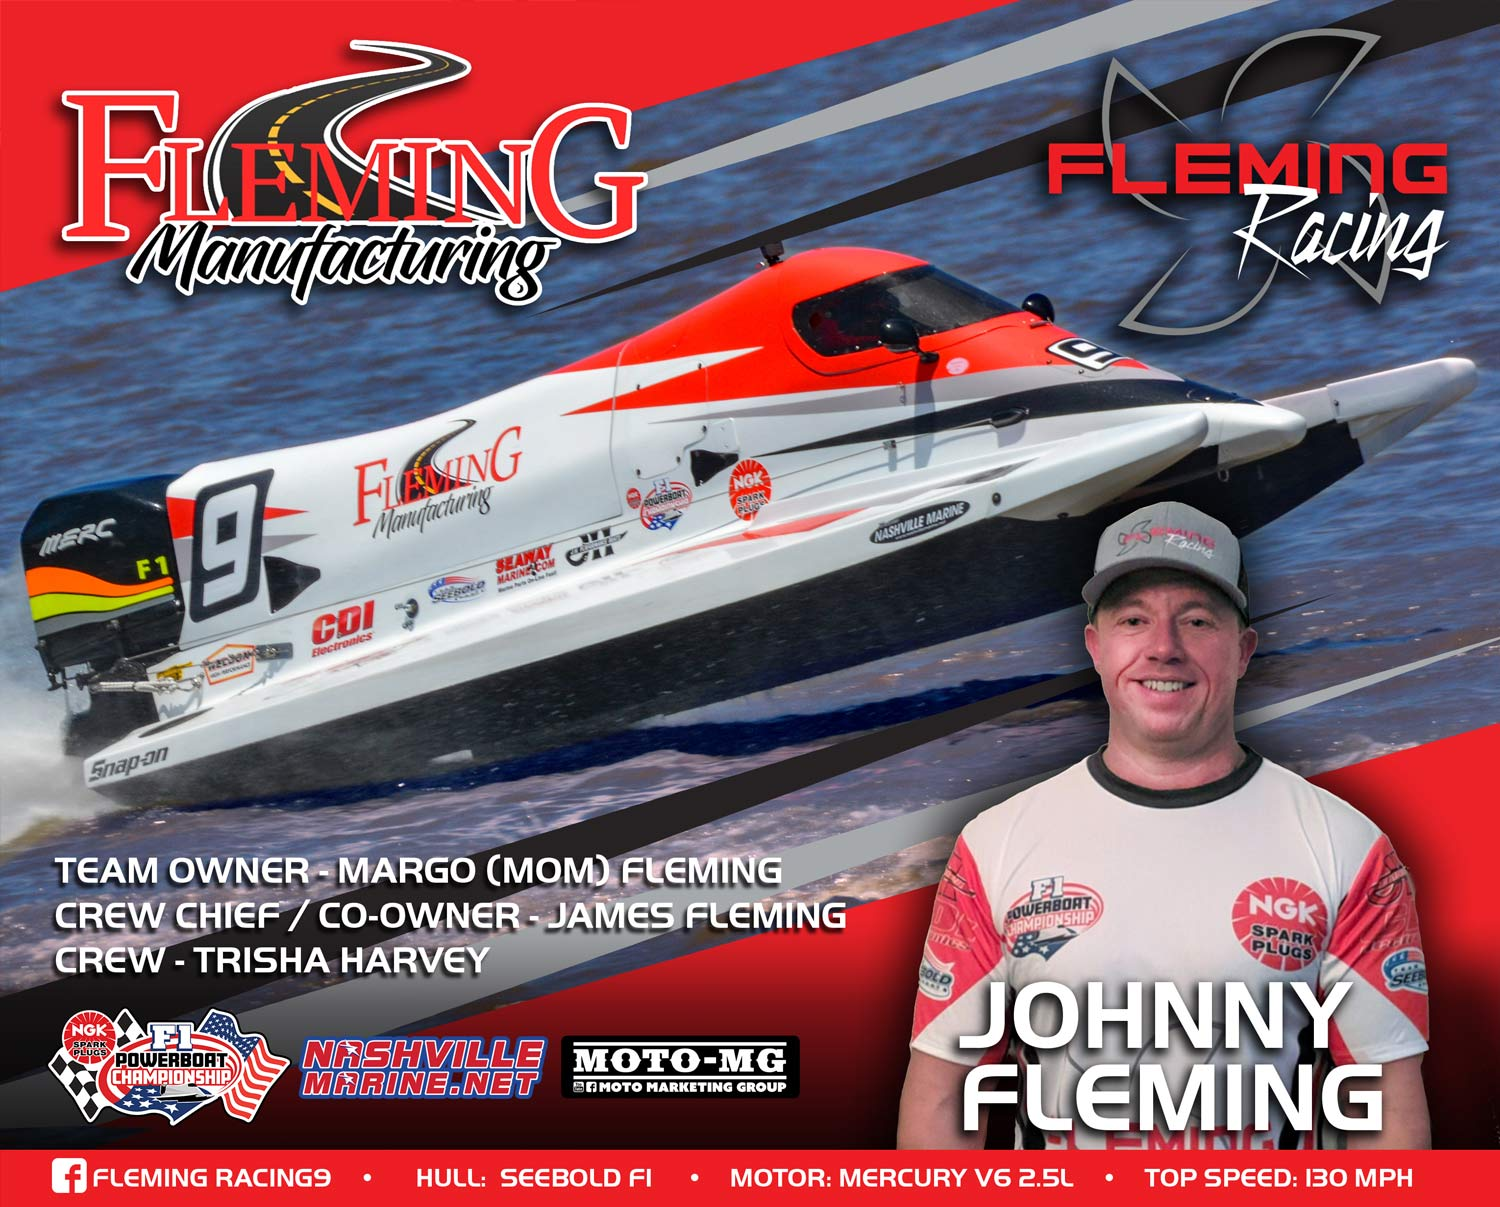 Nashville-Marine-McMurray-Racing-Formula-One-Boat-Racing-Driver-Johnny-Fleming-9